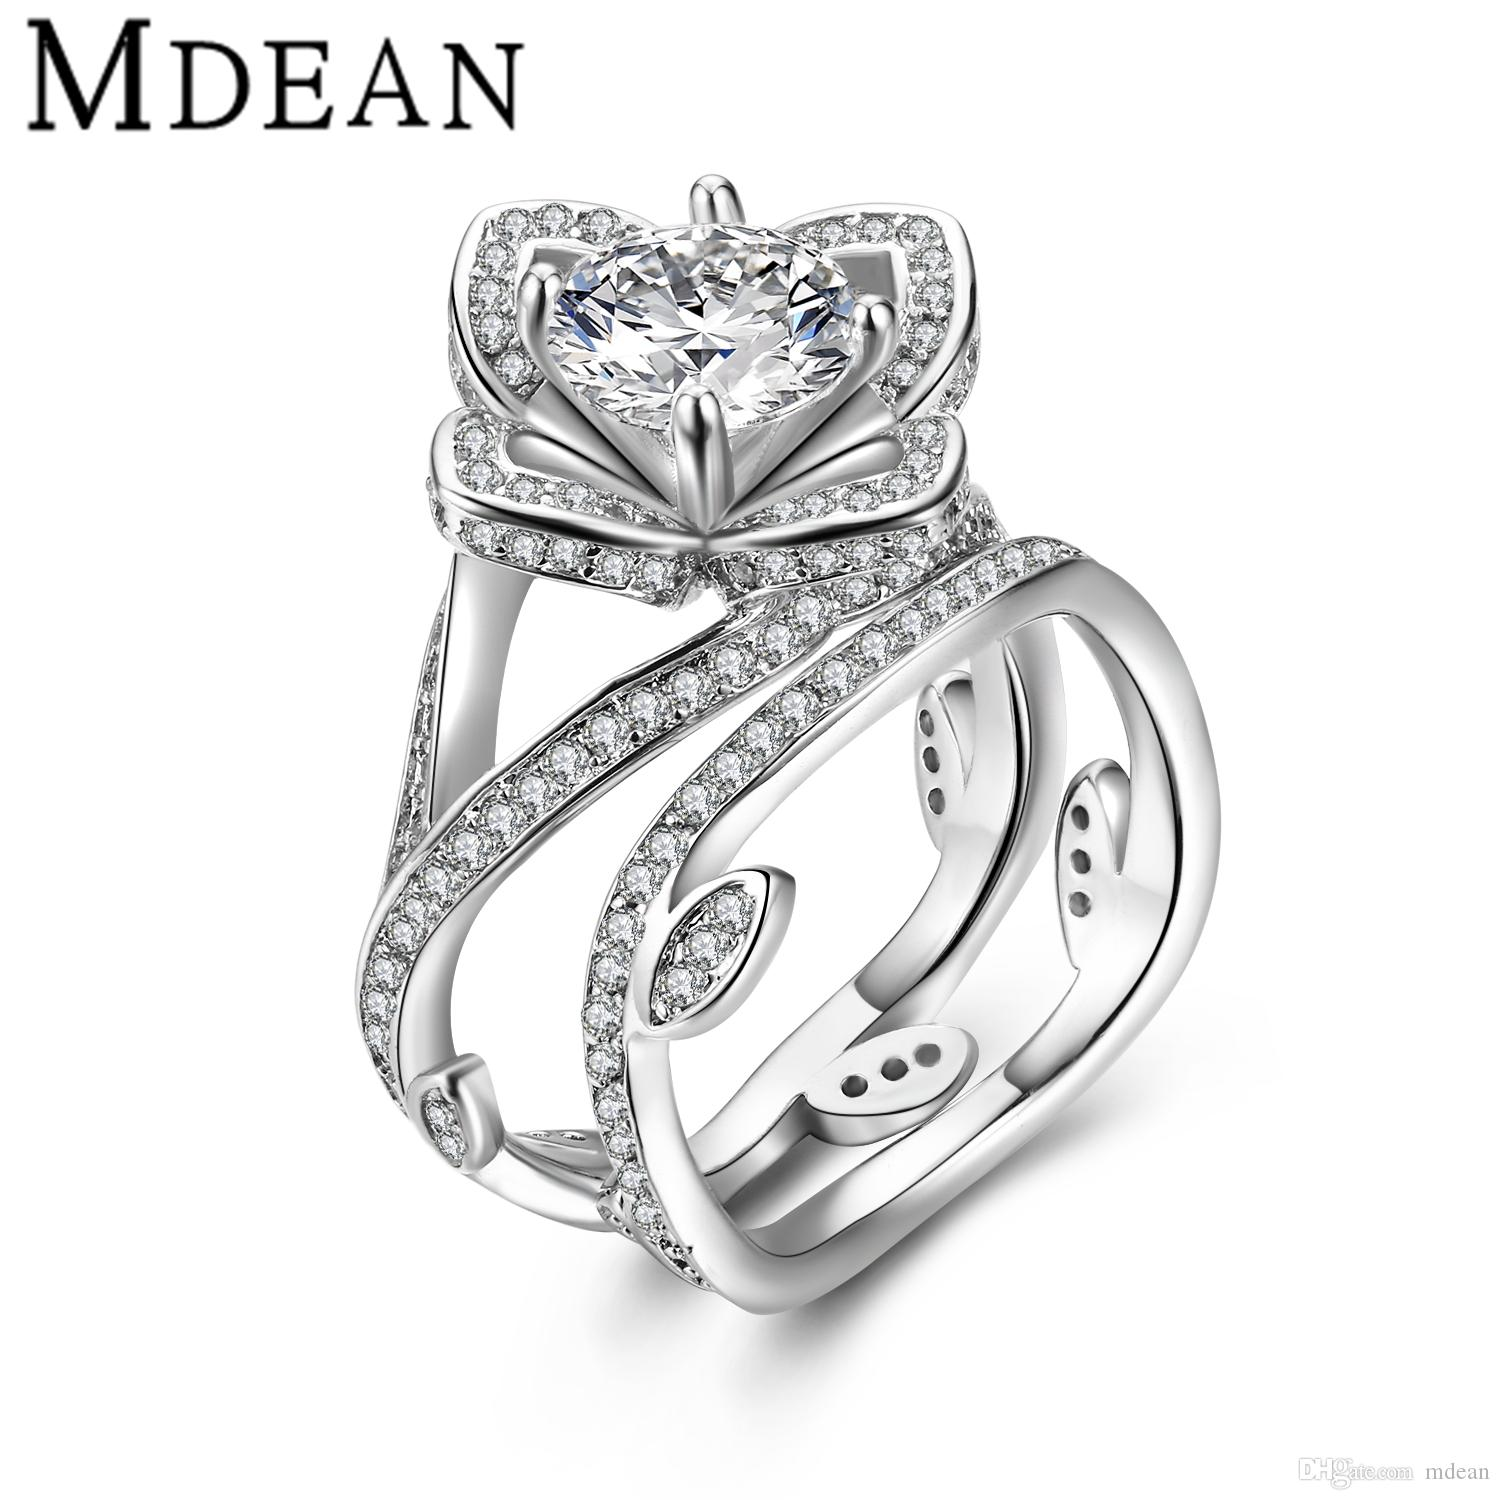 2018 Mdean White Gold Plated Ring Sets For Women Engagement Cz